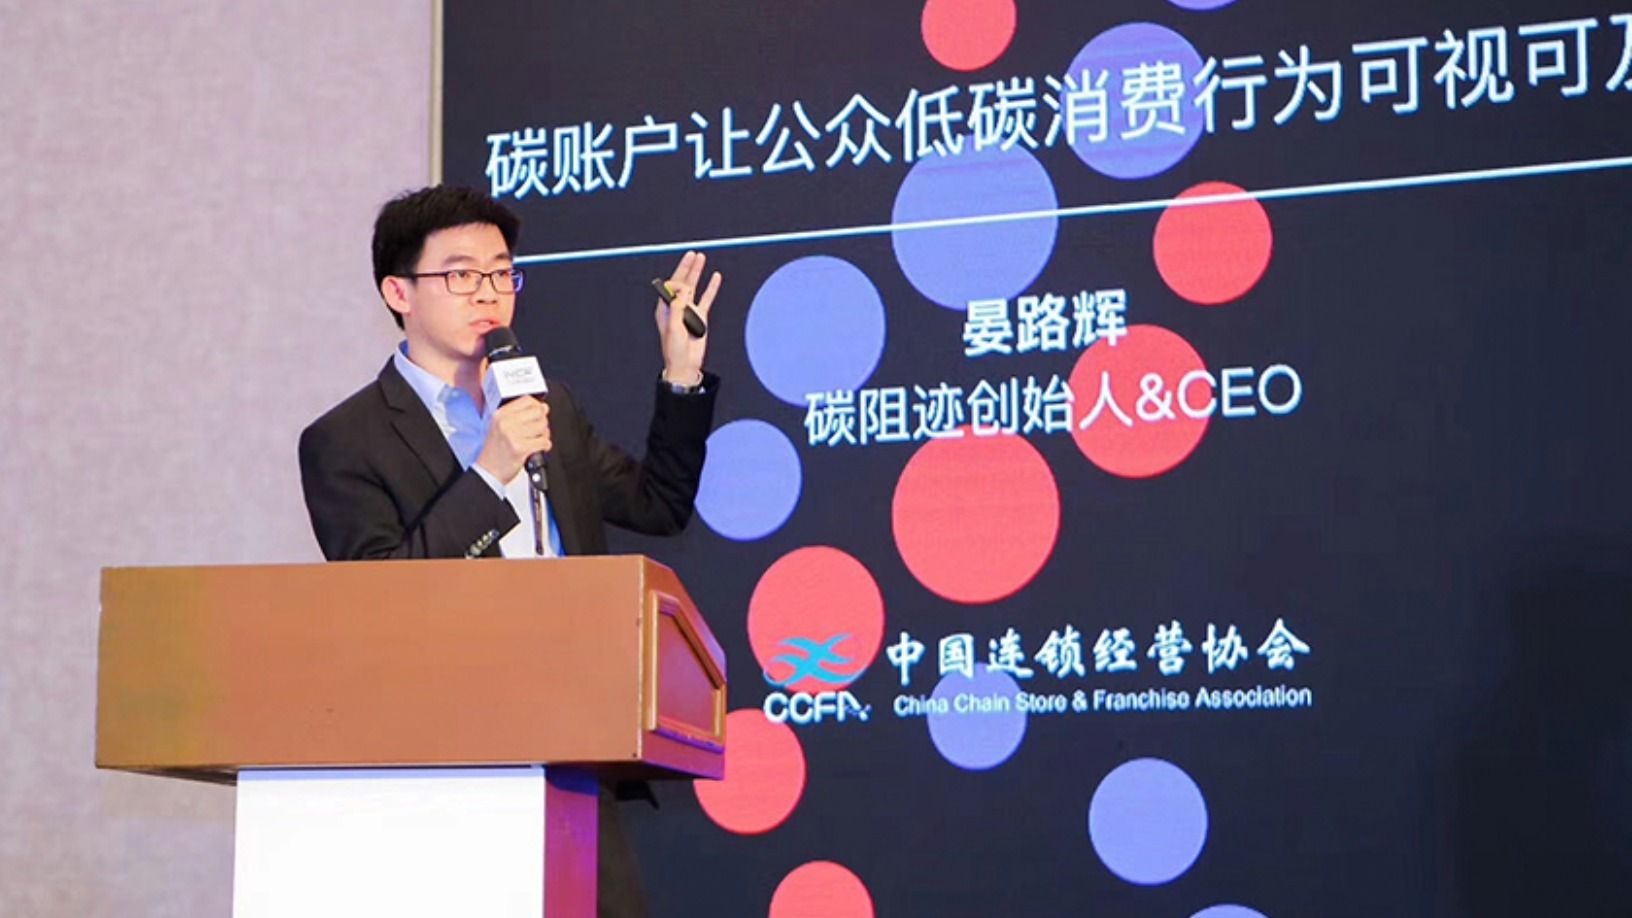 Carbonstop: Local pioneer in carbon emissions management to gain as China aims carbon neutrality by 2060